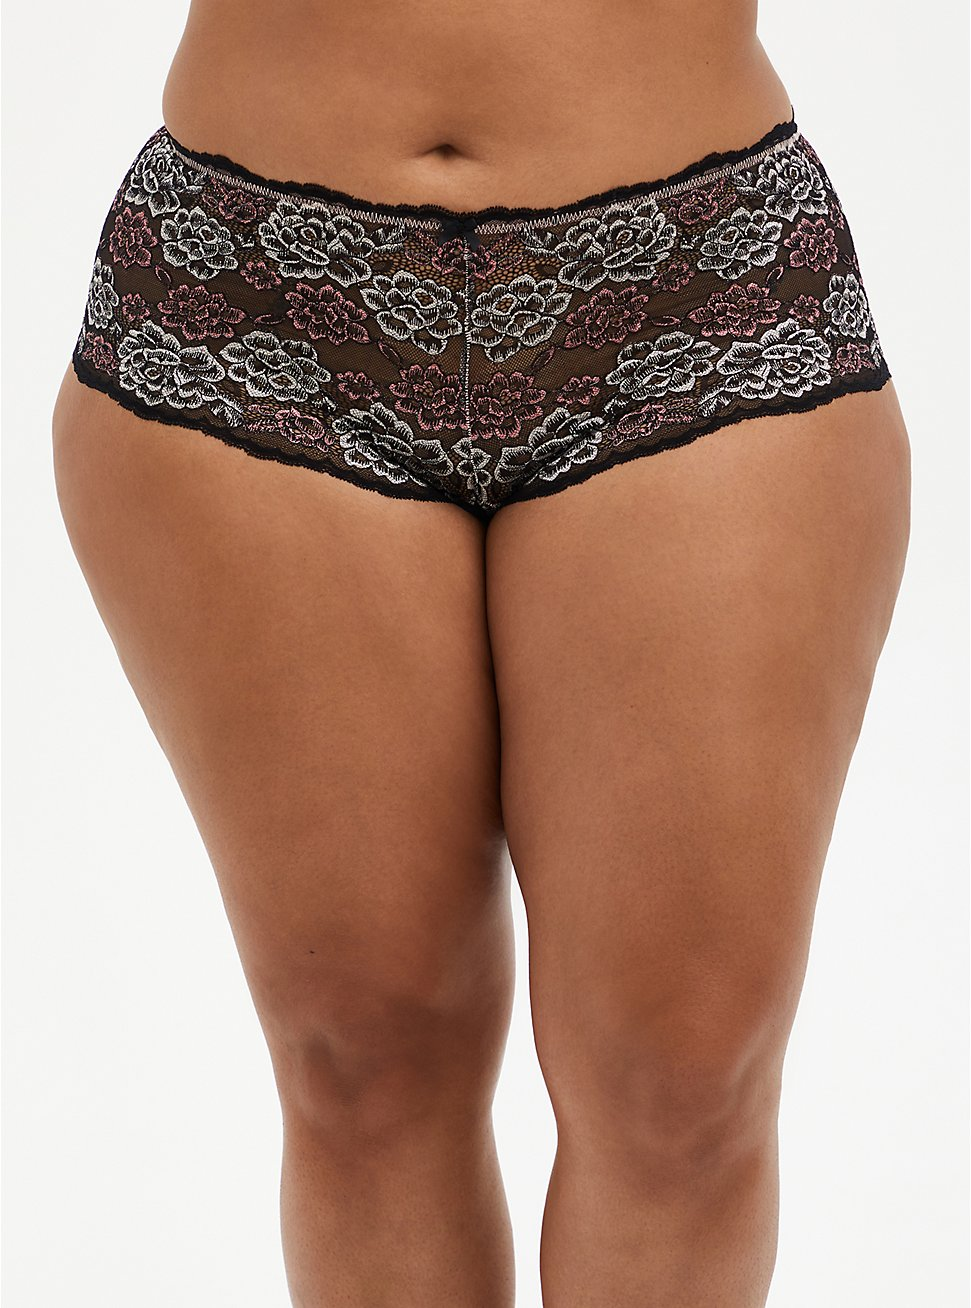 Black Pink Lace Cheeky Panty, FADED FLORAL, hi-res